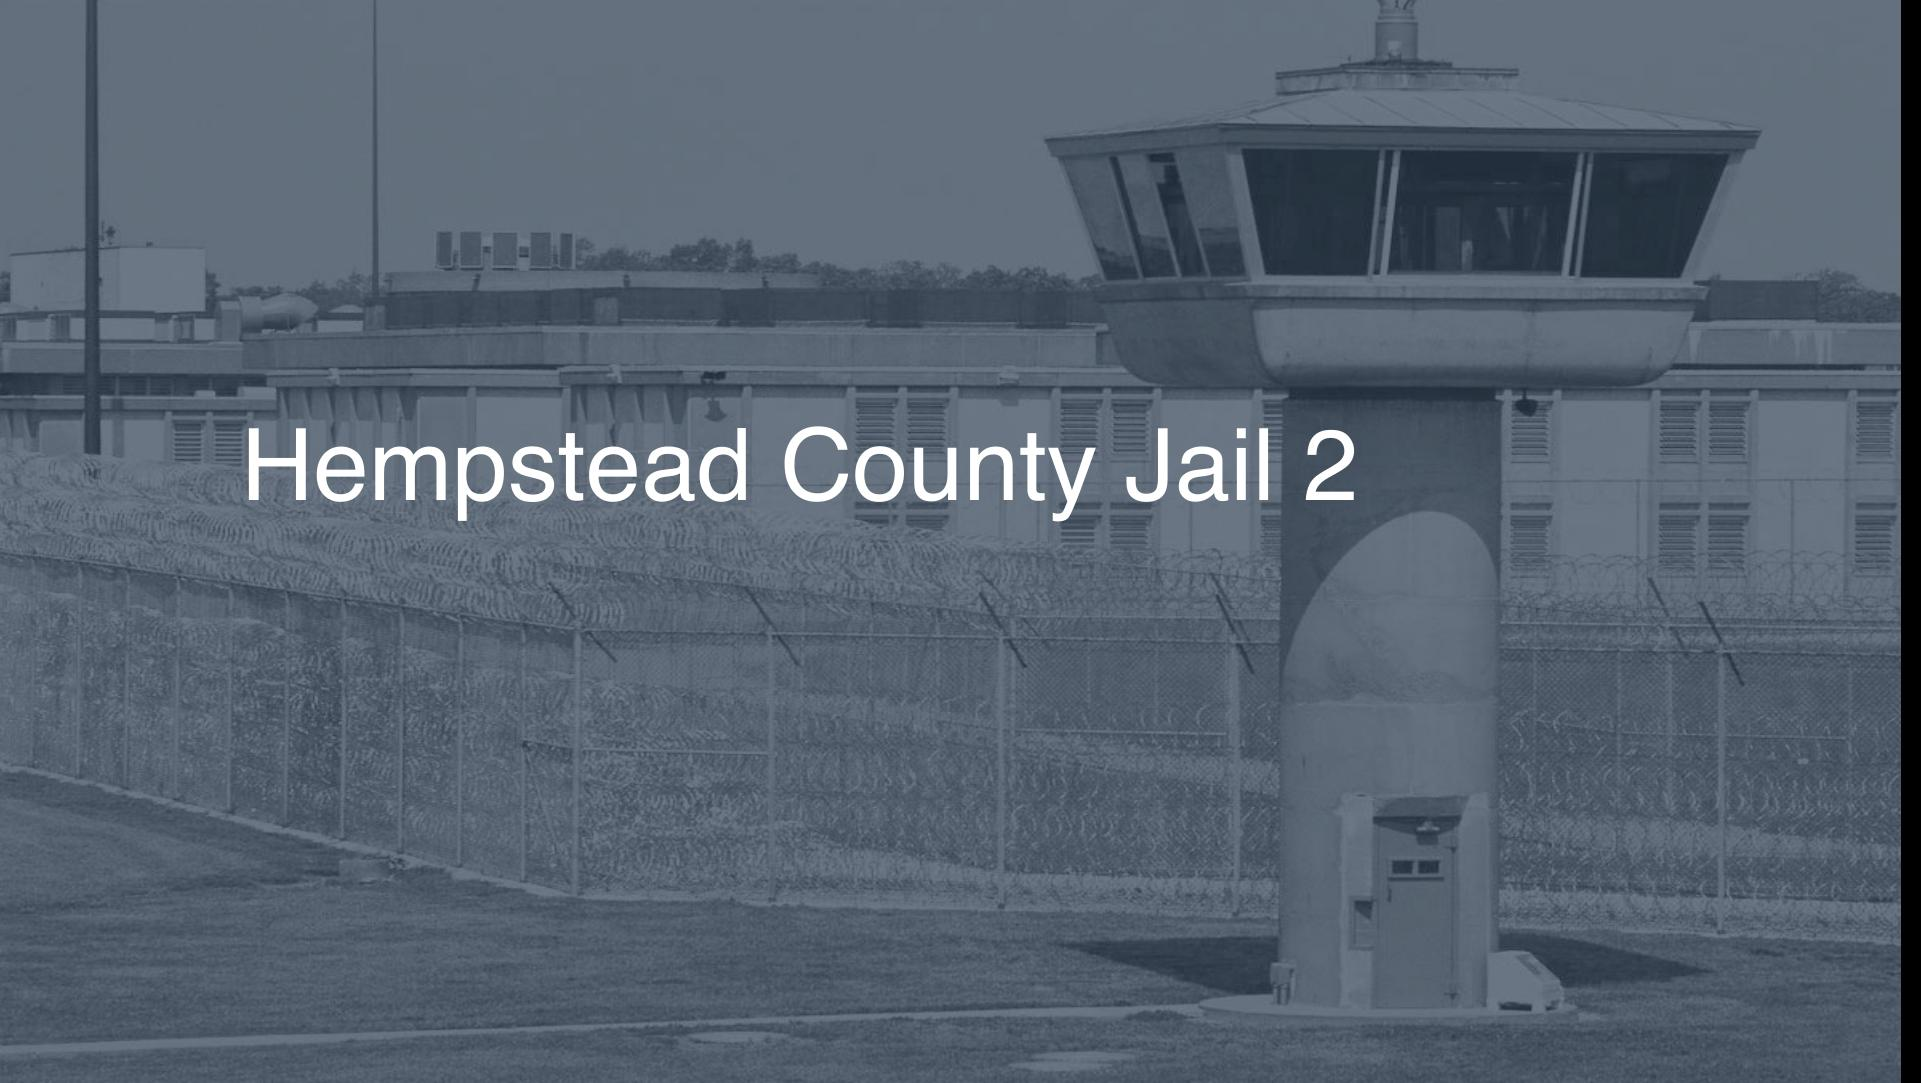 Hempstead County Jail | Pigeonly - Inmate Search, Locate